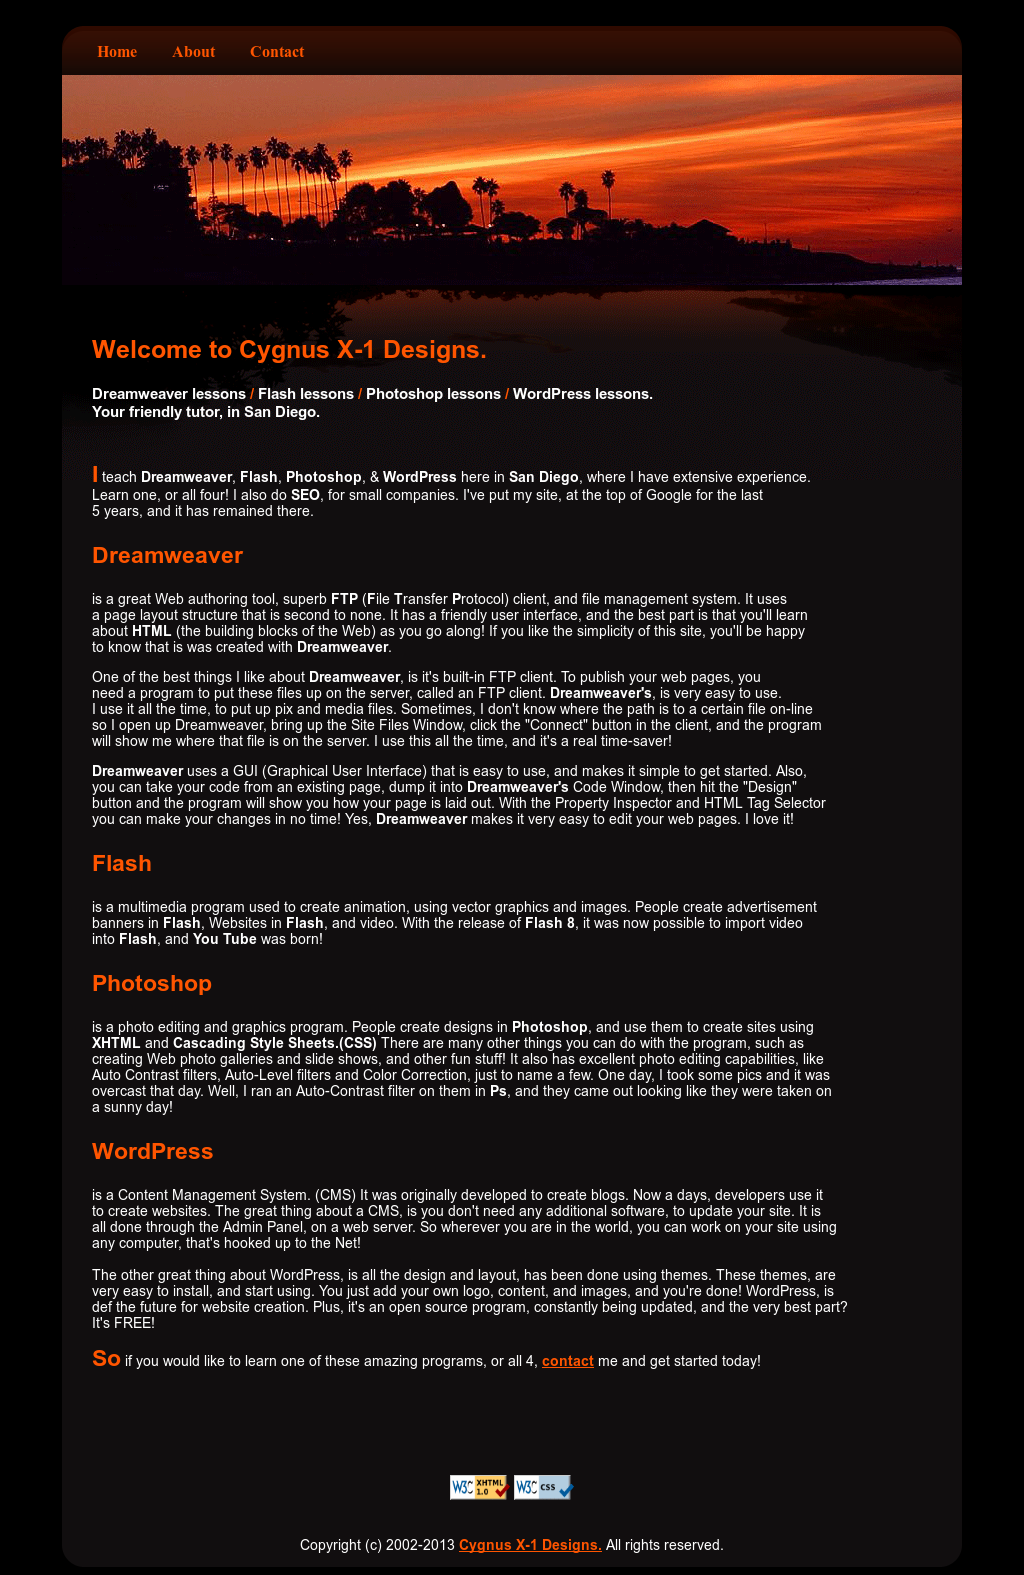 Cygnus X-1 Designs Competitors, Revenue and Employees